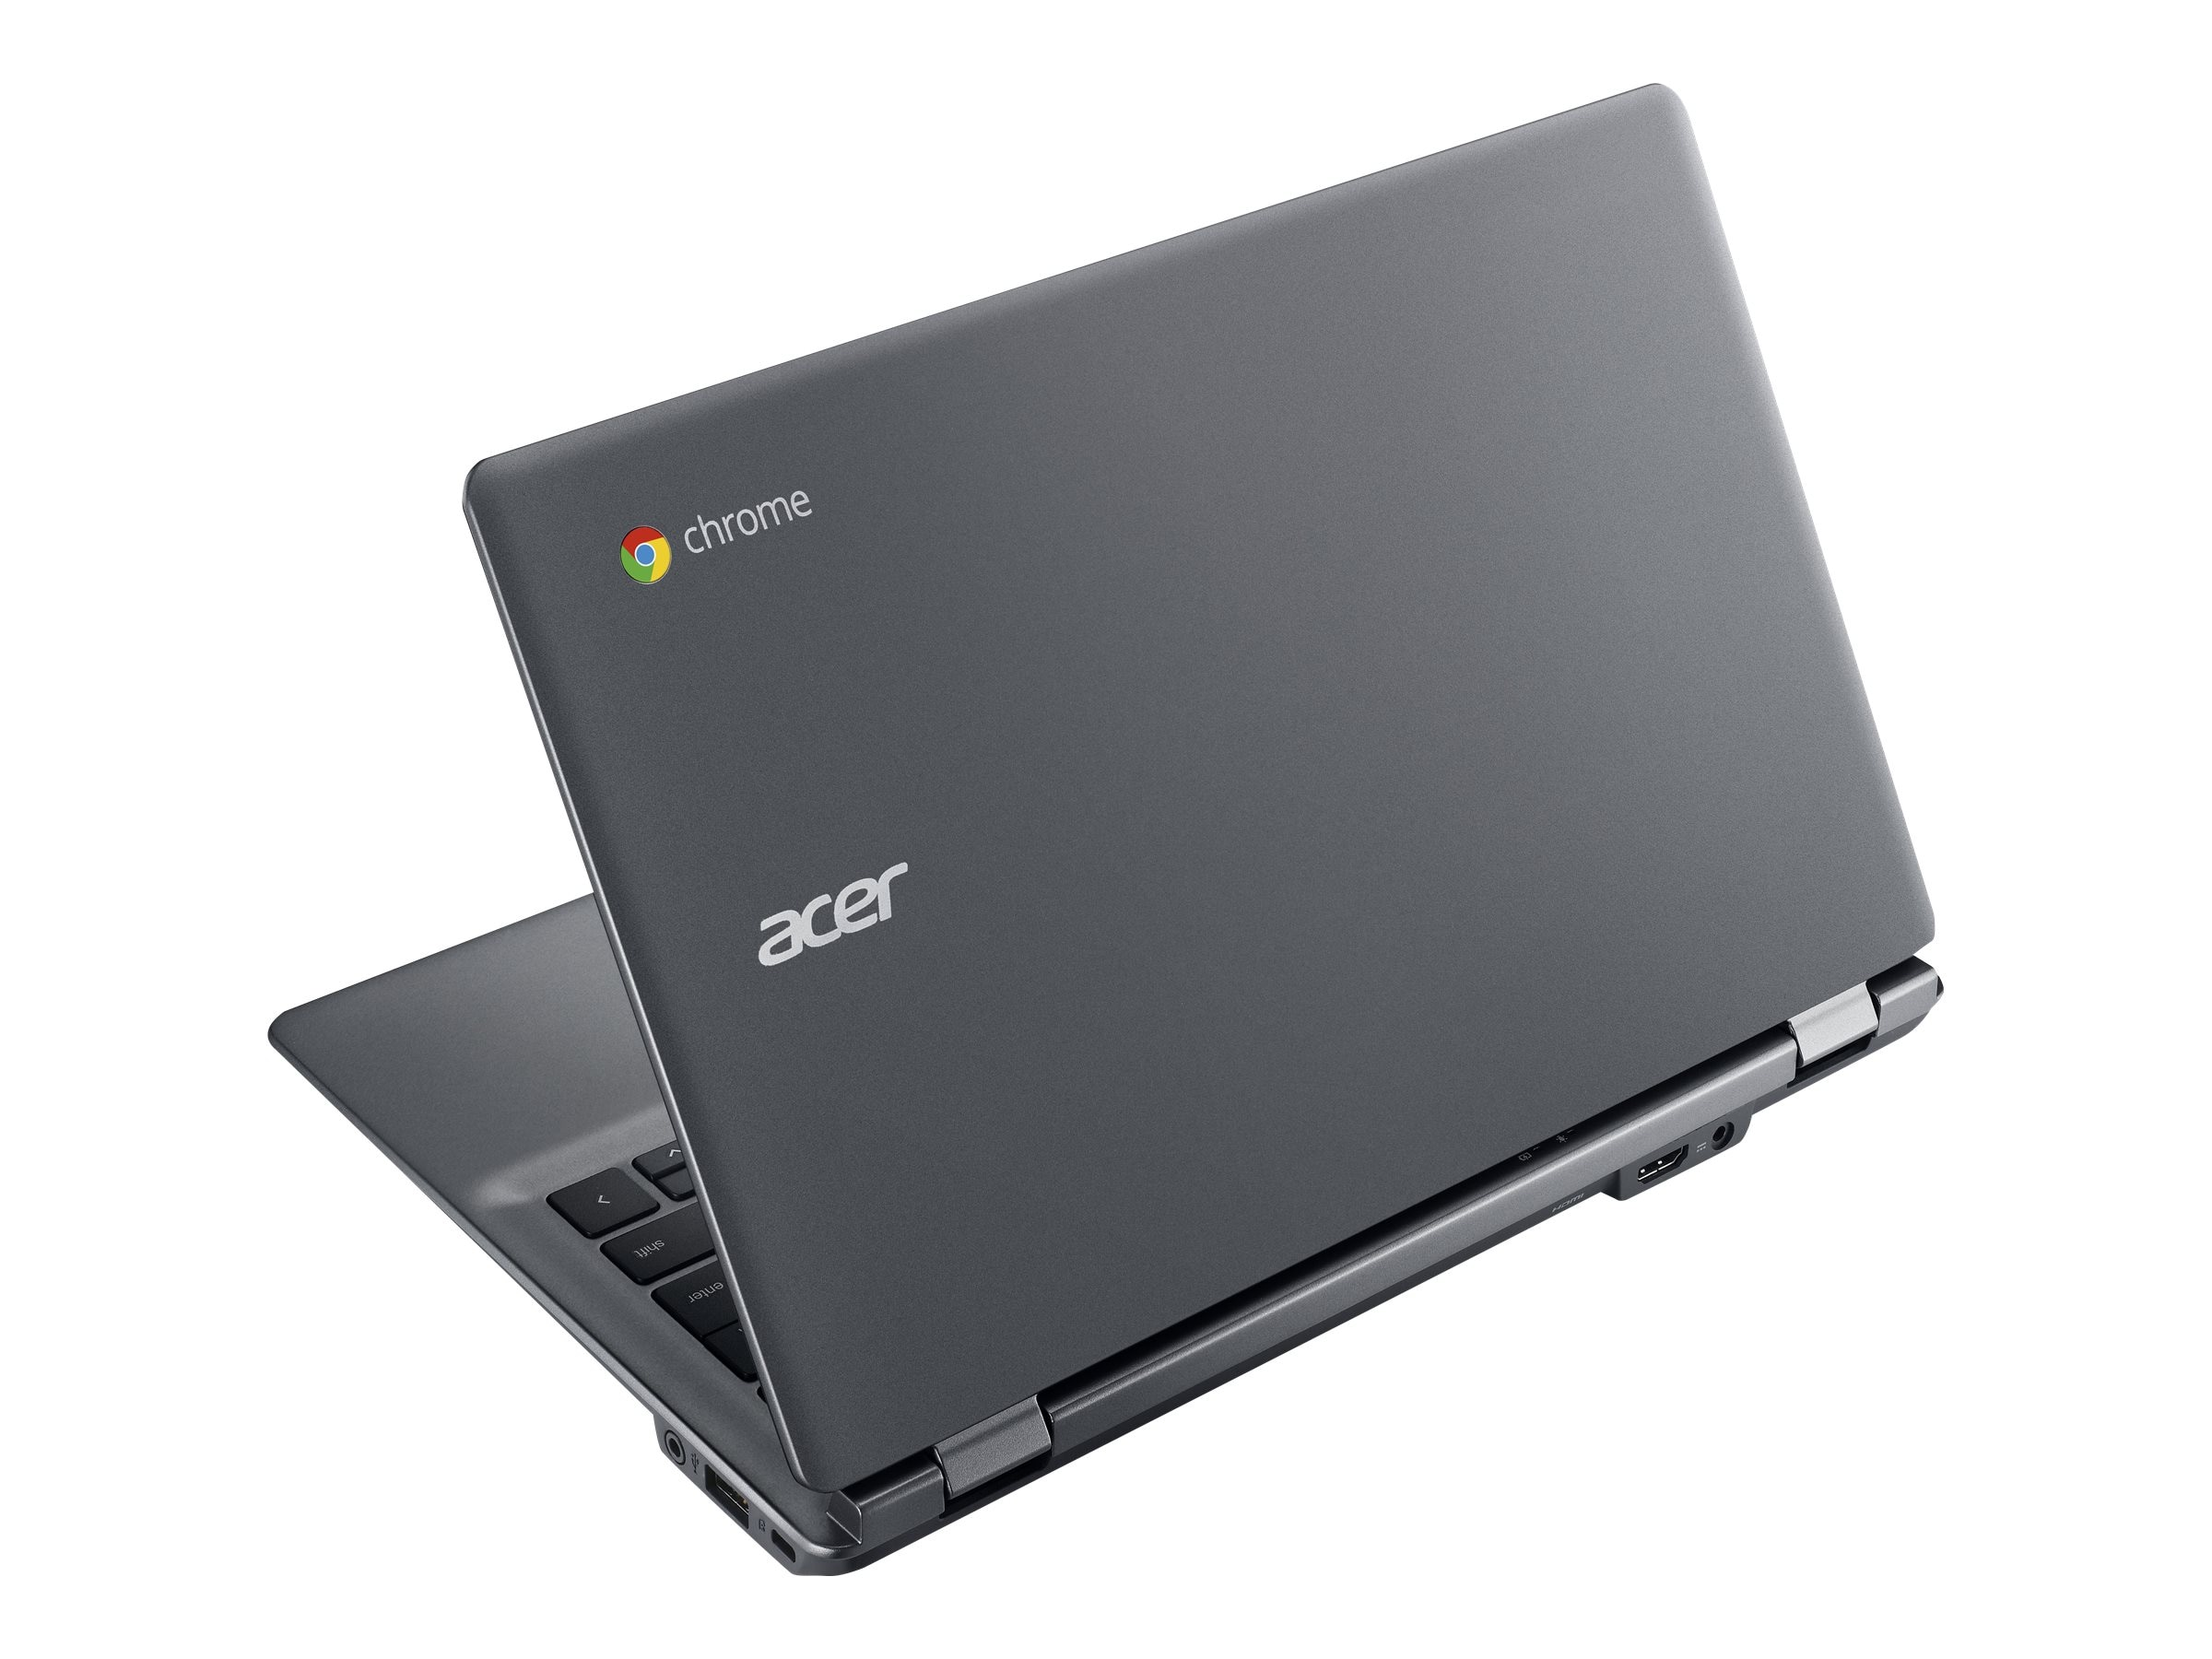 Acer Chromebook 11 C730E-C555 2.16GHz Celeron 11.6in display, NX.GC1AA.002